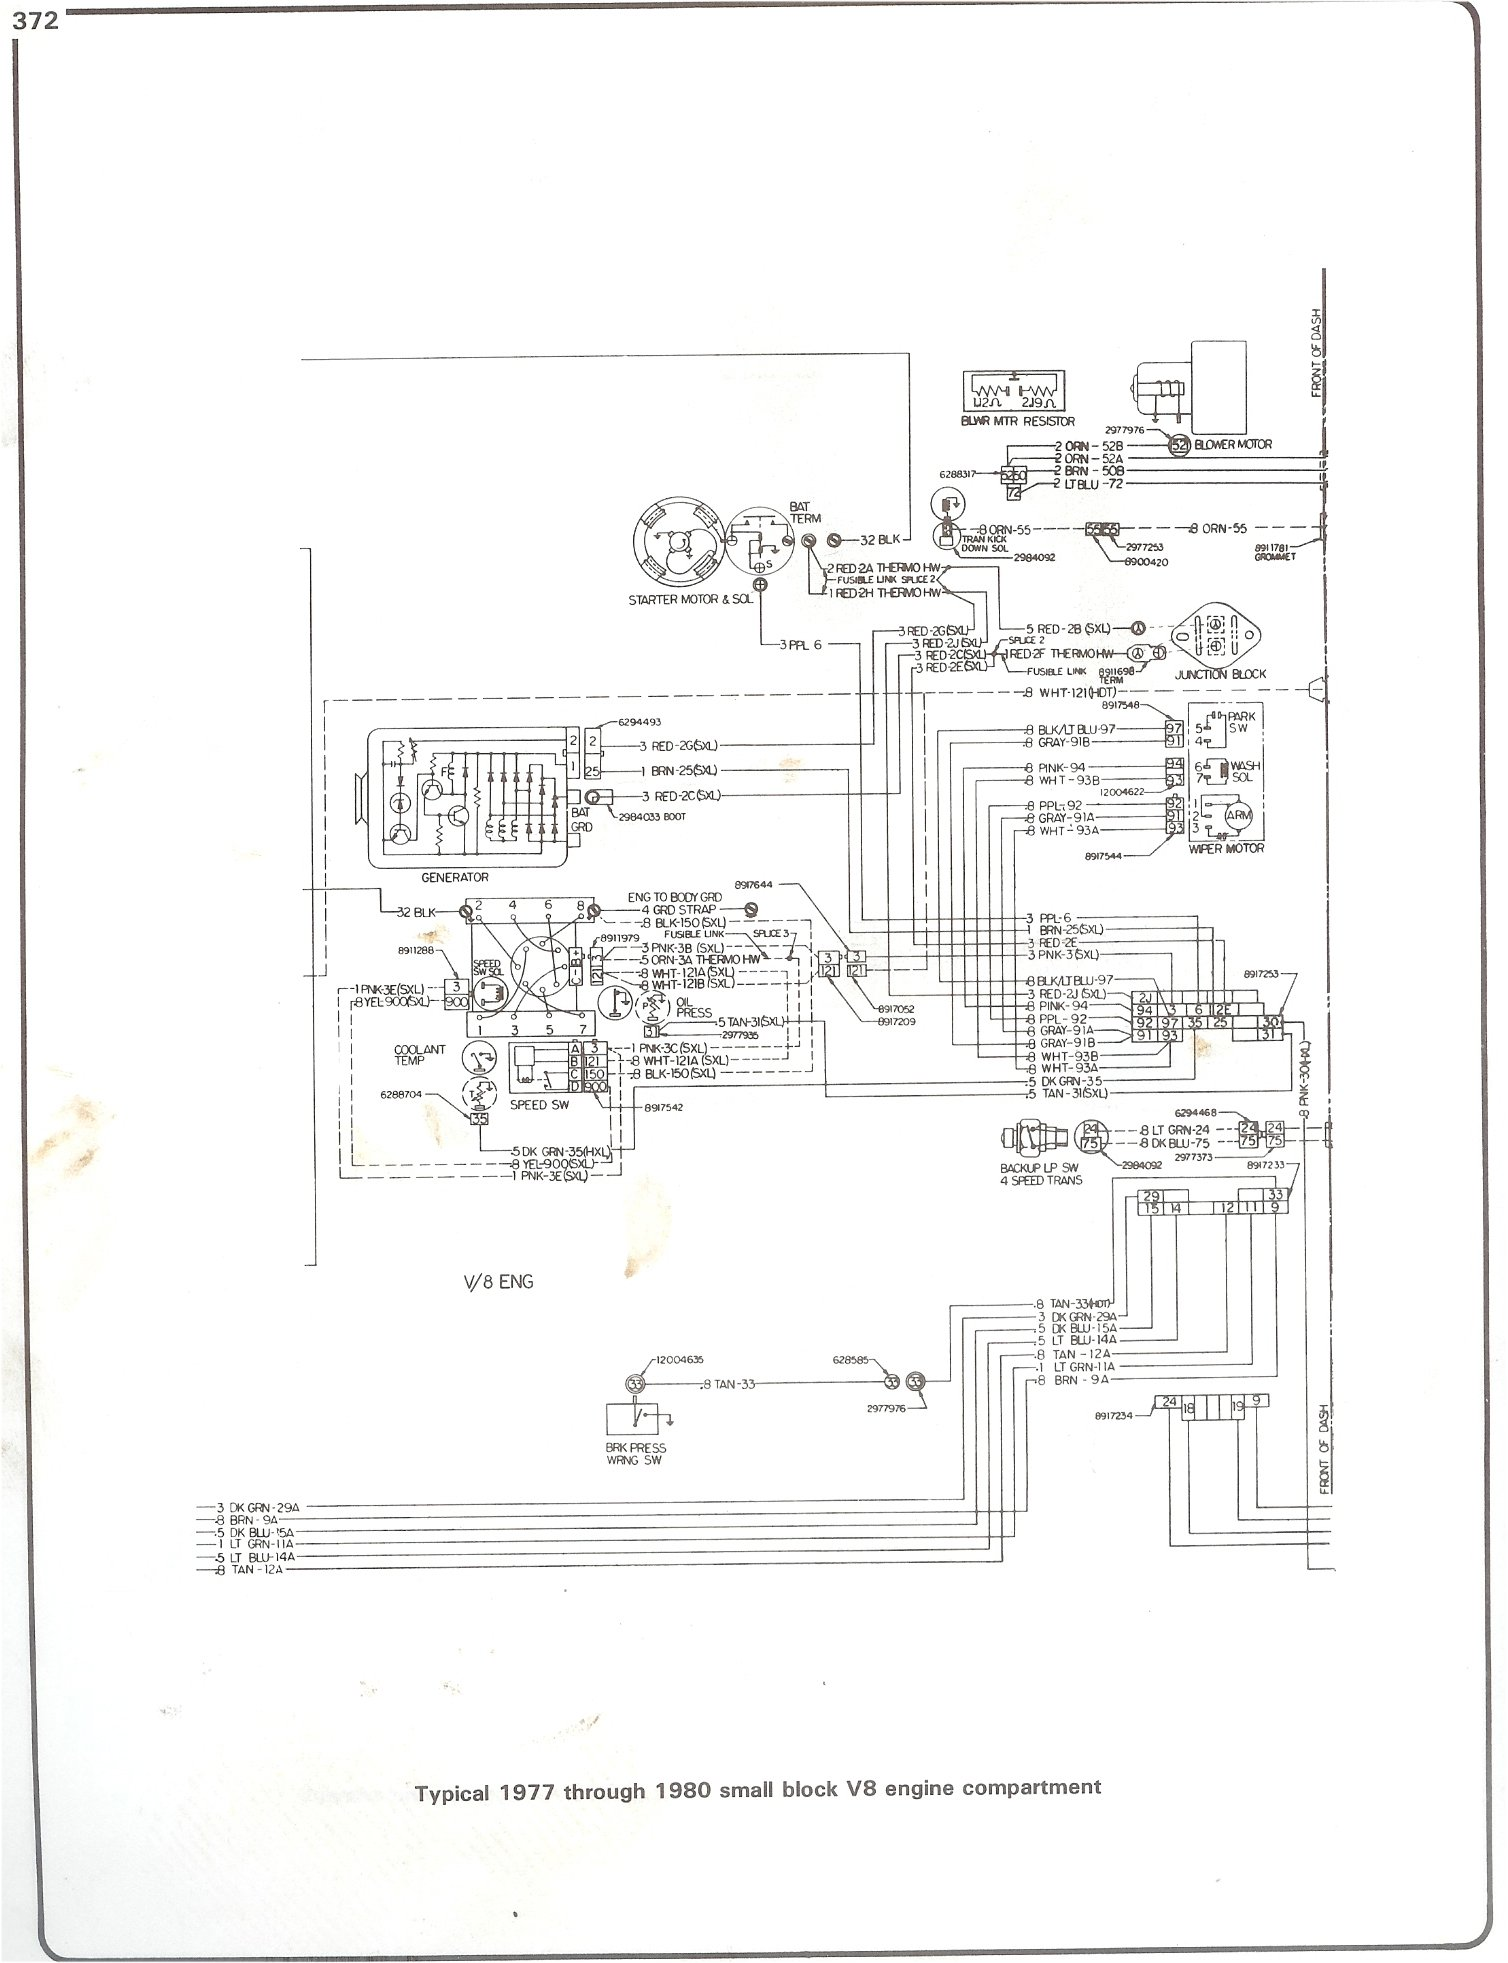 Complete 73 87 Wiring Diagrams 2000 Blazer Engine And 4x4 Transmission Diagram Autos Post 77 80 Sbc